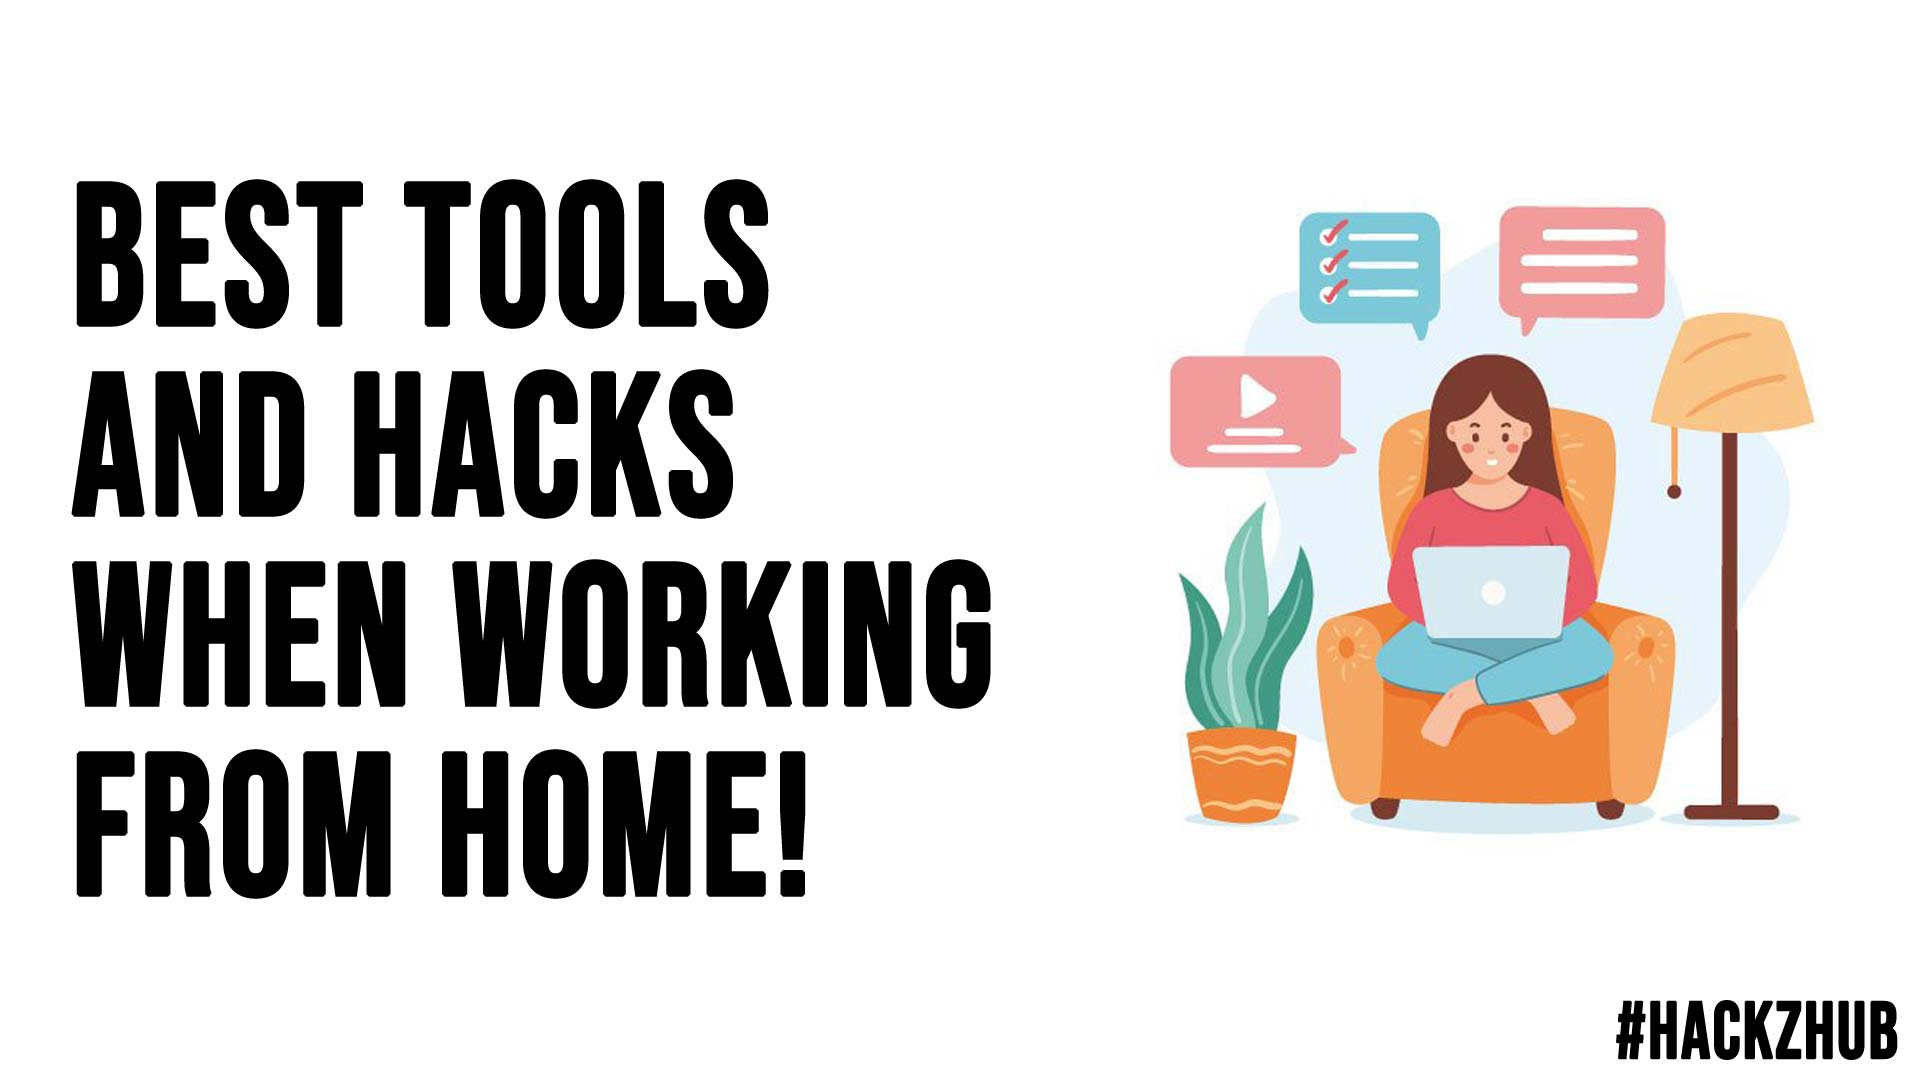 Best Tools And Hacks When Working From Home